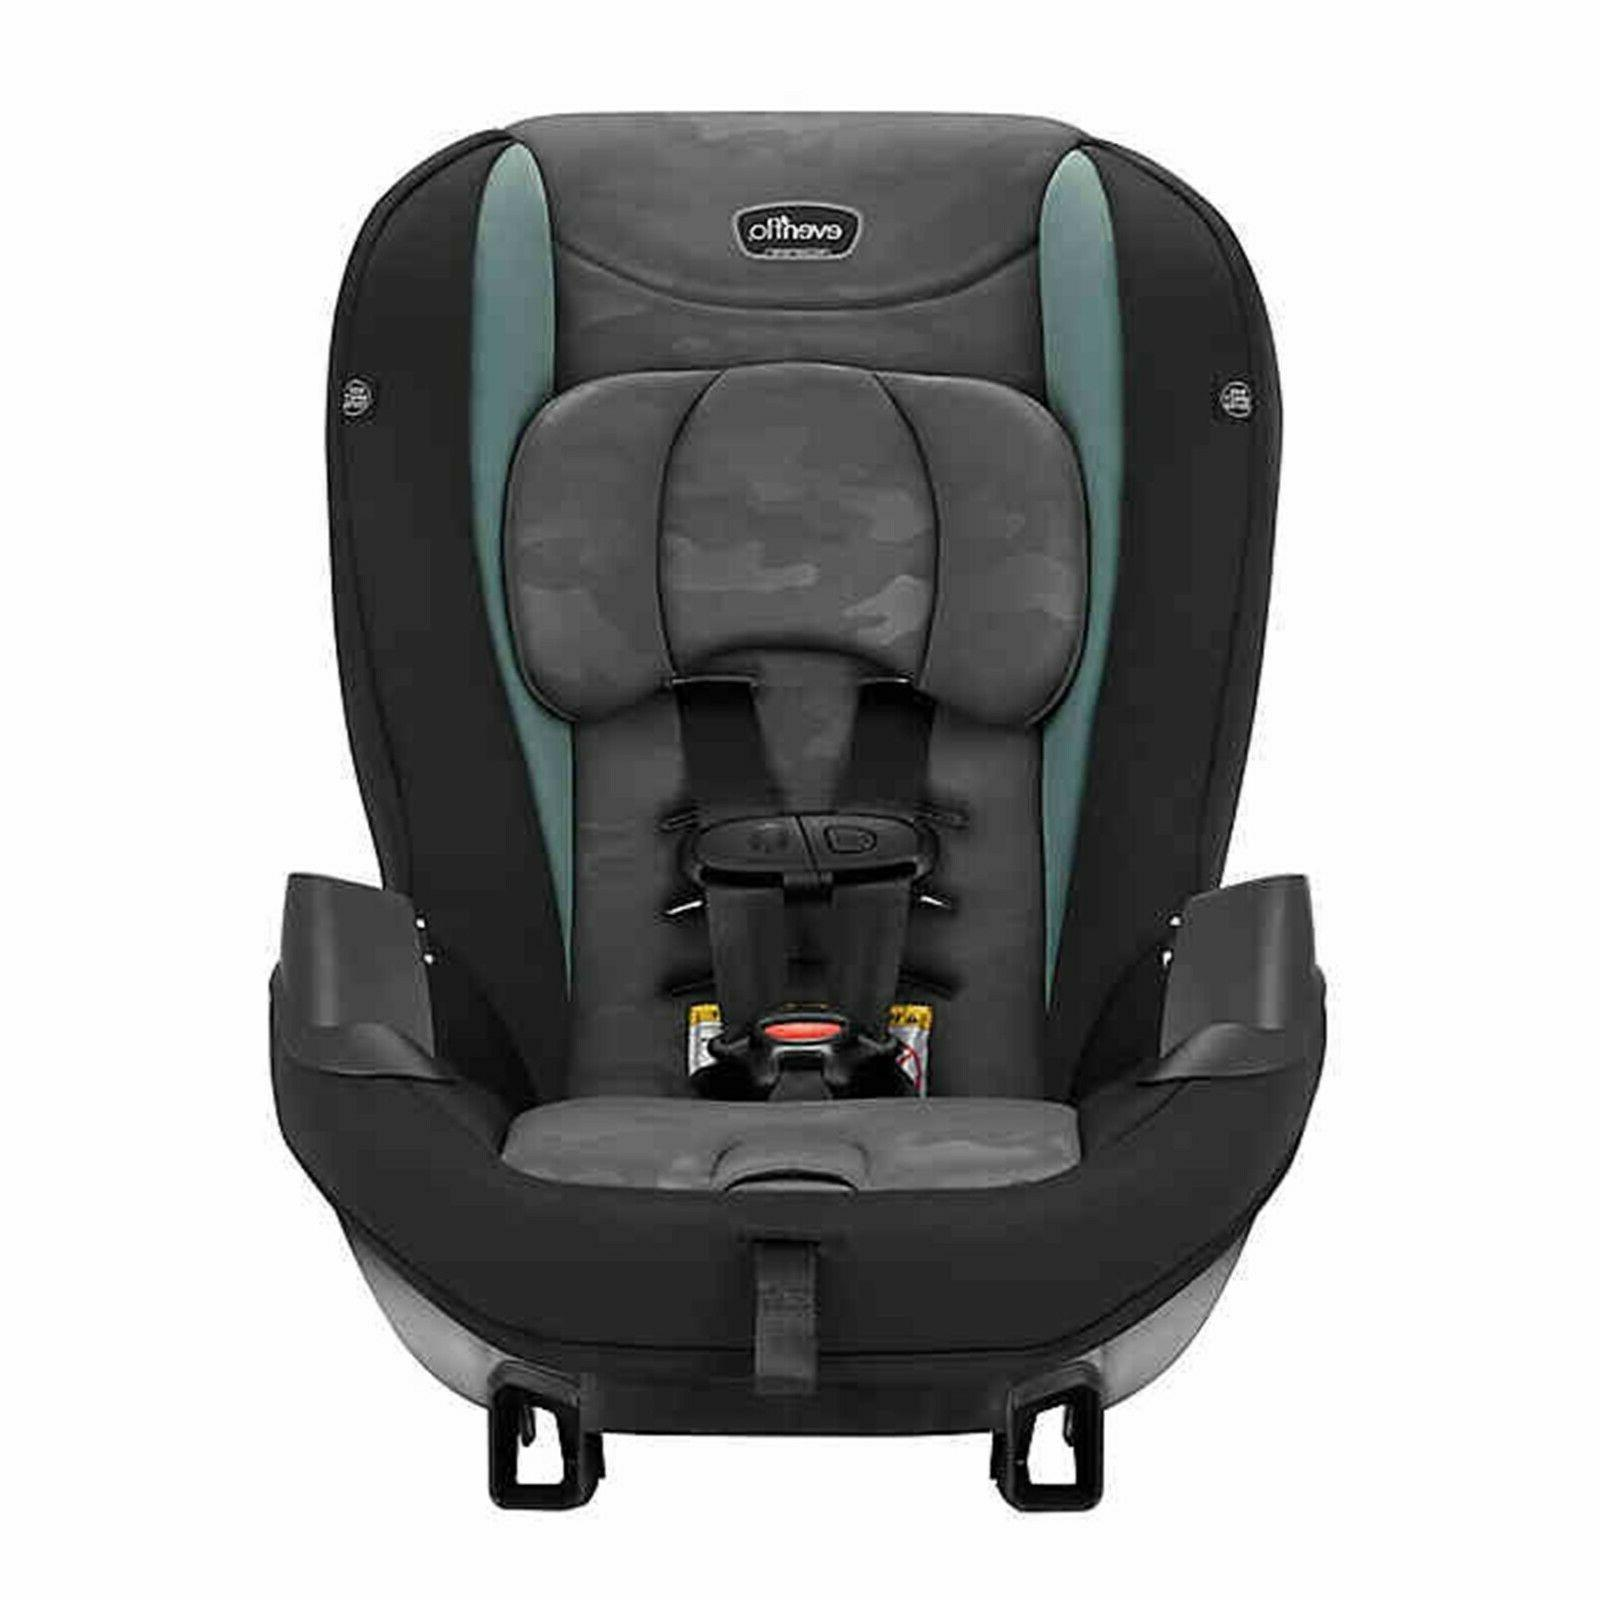 Evenflo Convertible Car Seats 5-point Safety Harness New